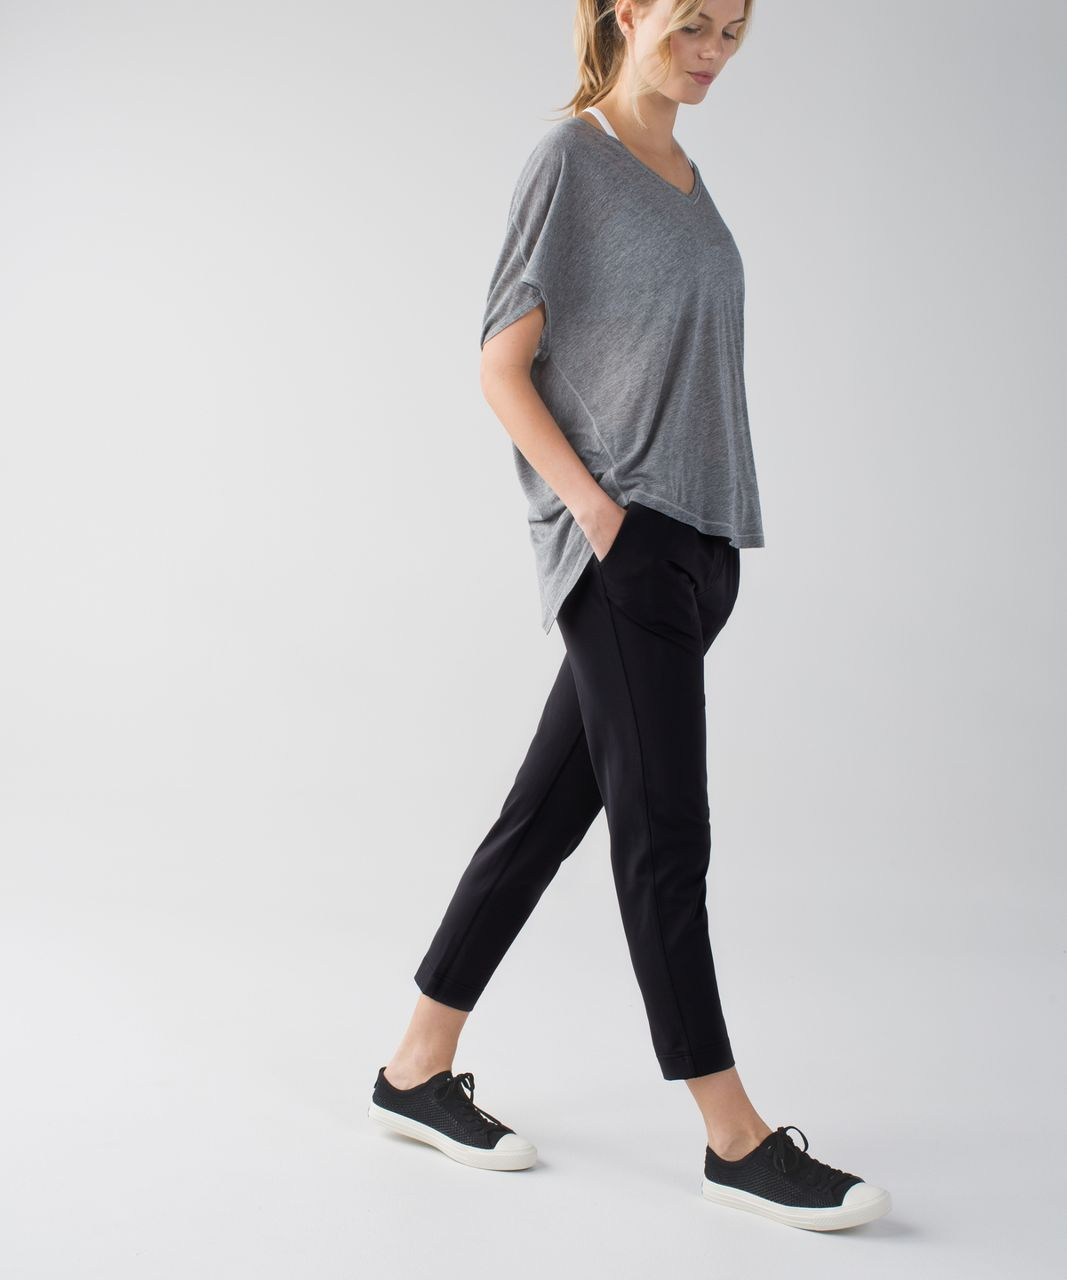 Lululemon Jet Crop (Slim) - Black / Lullaby